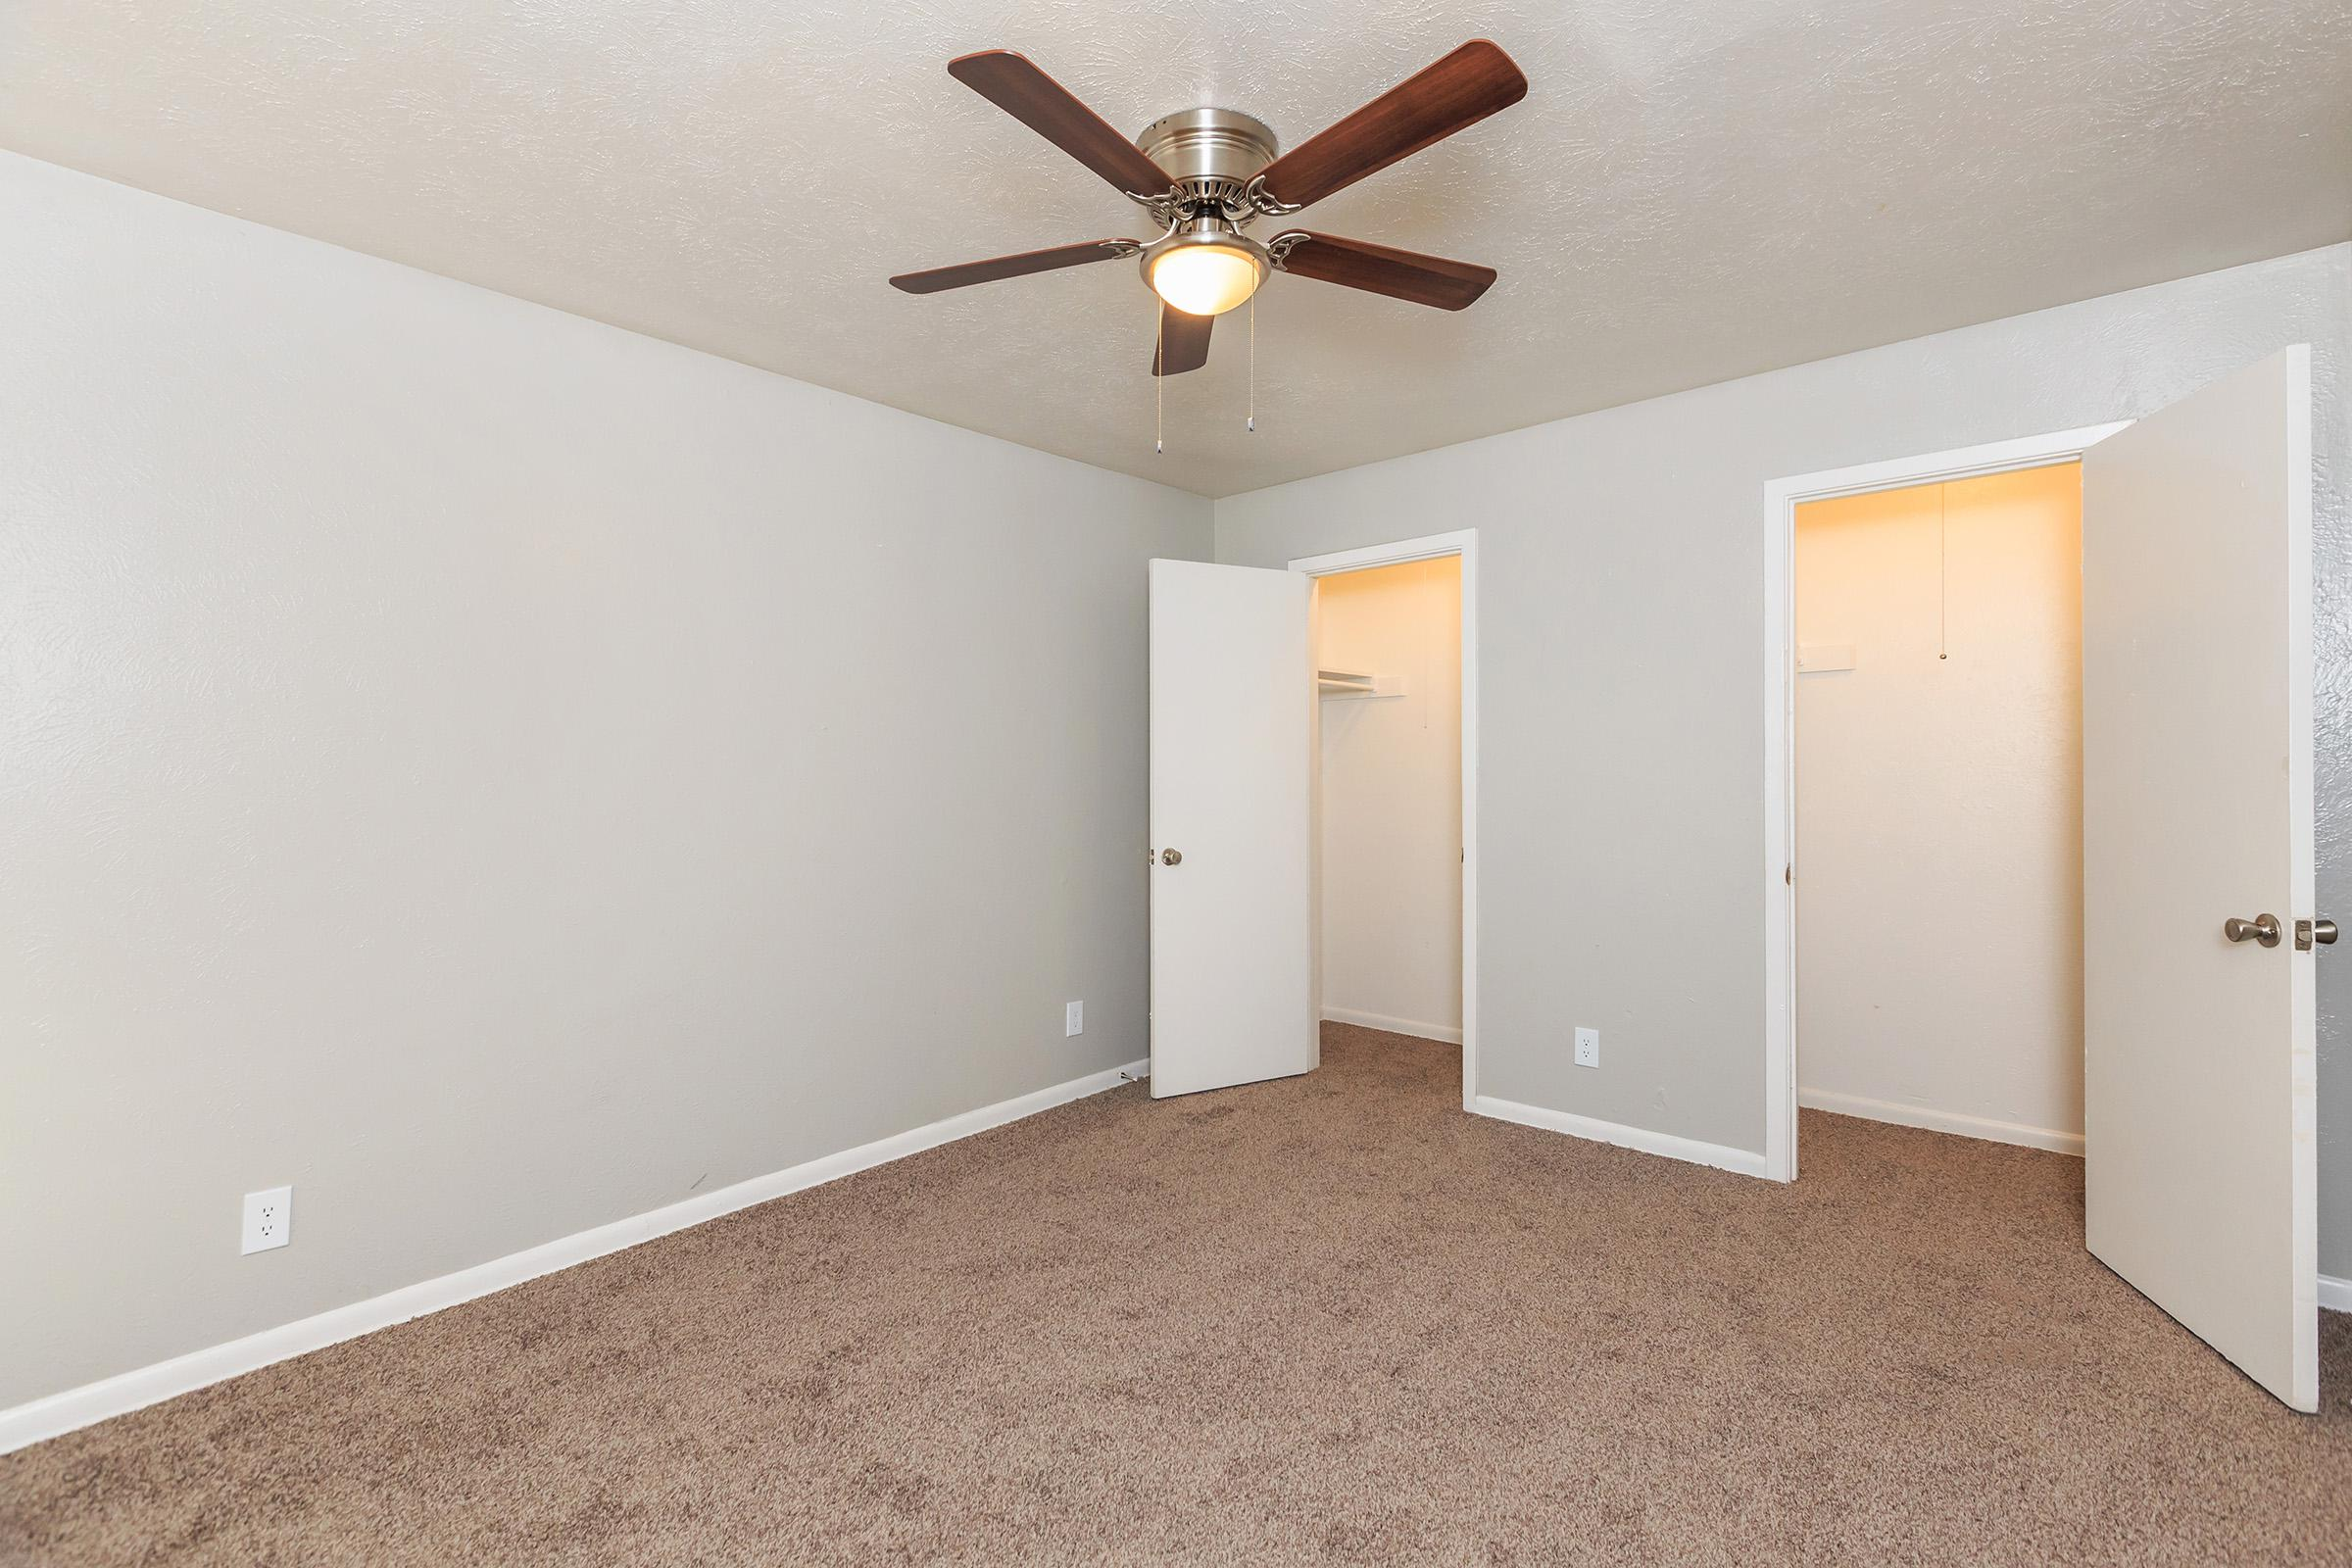 PLUSH CARPETED BEDROOM